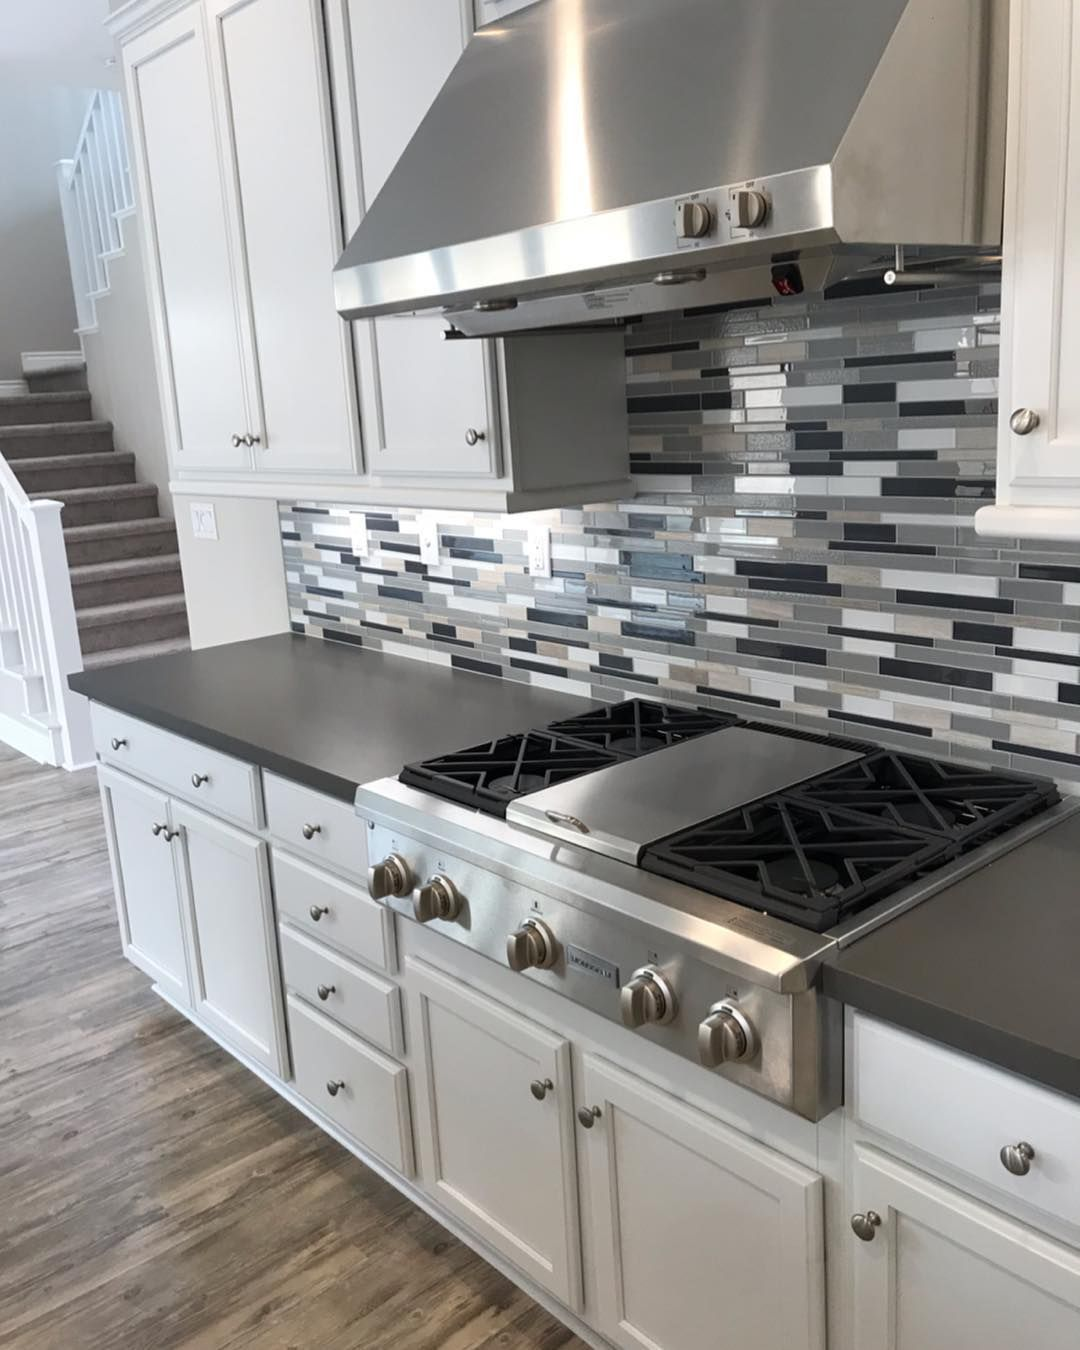 top 5 ideas for modern kitchen 2020 56 photos and videos kitchen trends modern kitchen on kitchen ideas modern id=36608